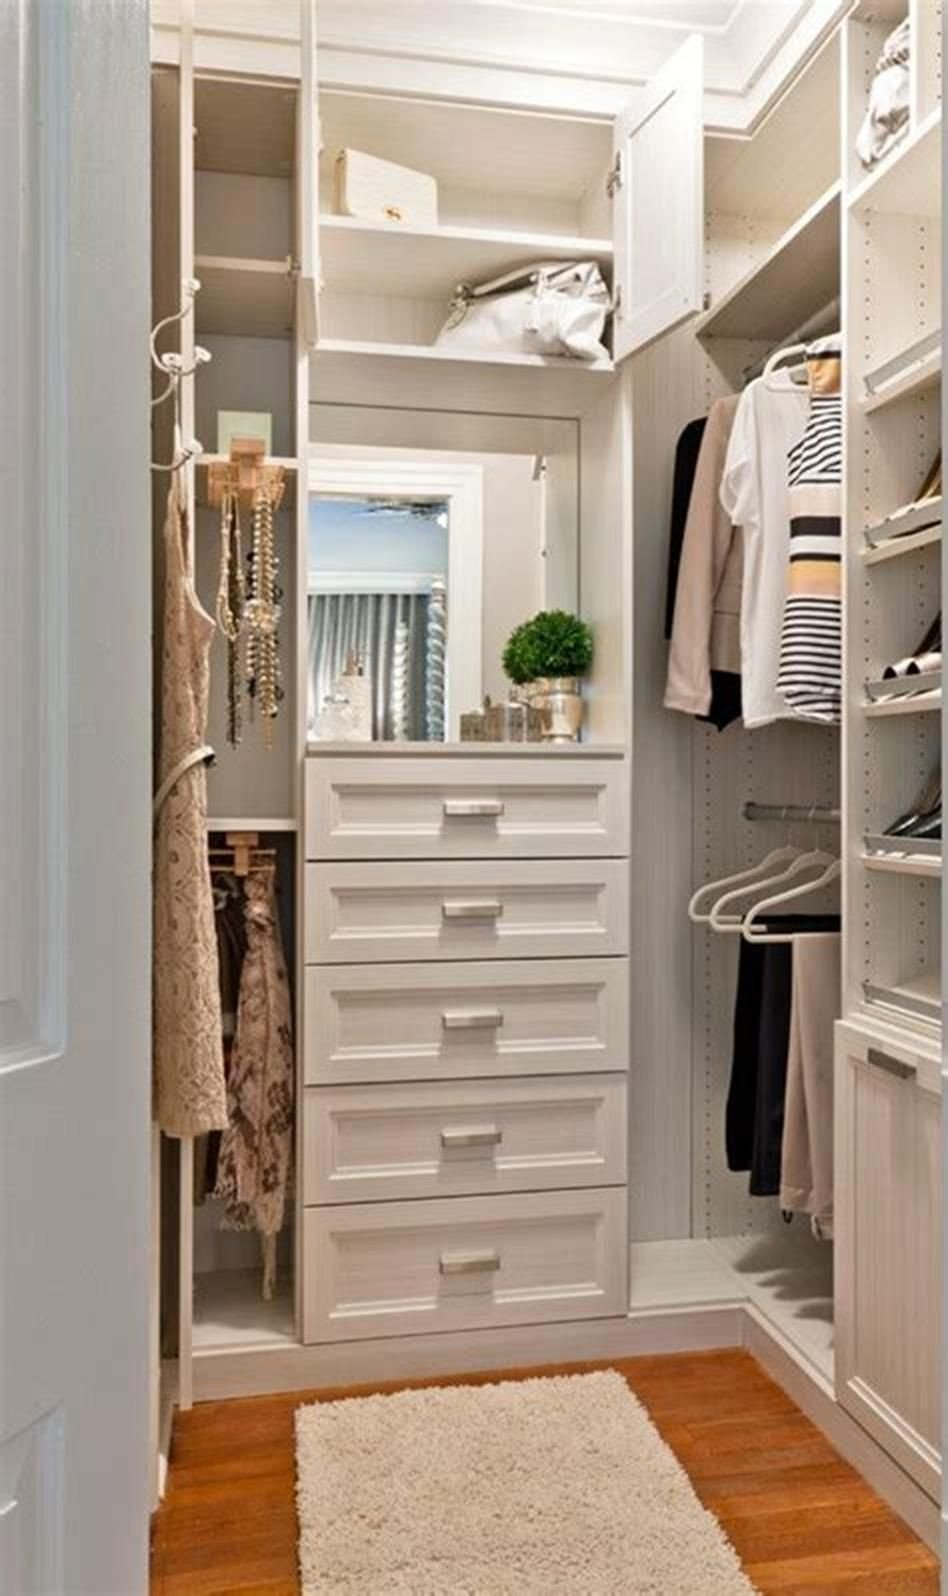 Small Bedroom organization Ideas Beautiful 40 Best Small Walk In Bedroom Closet organization and